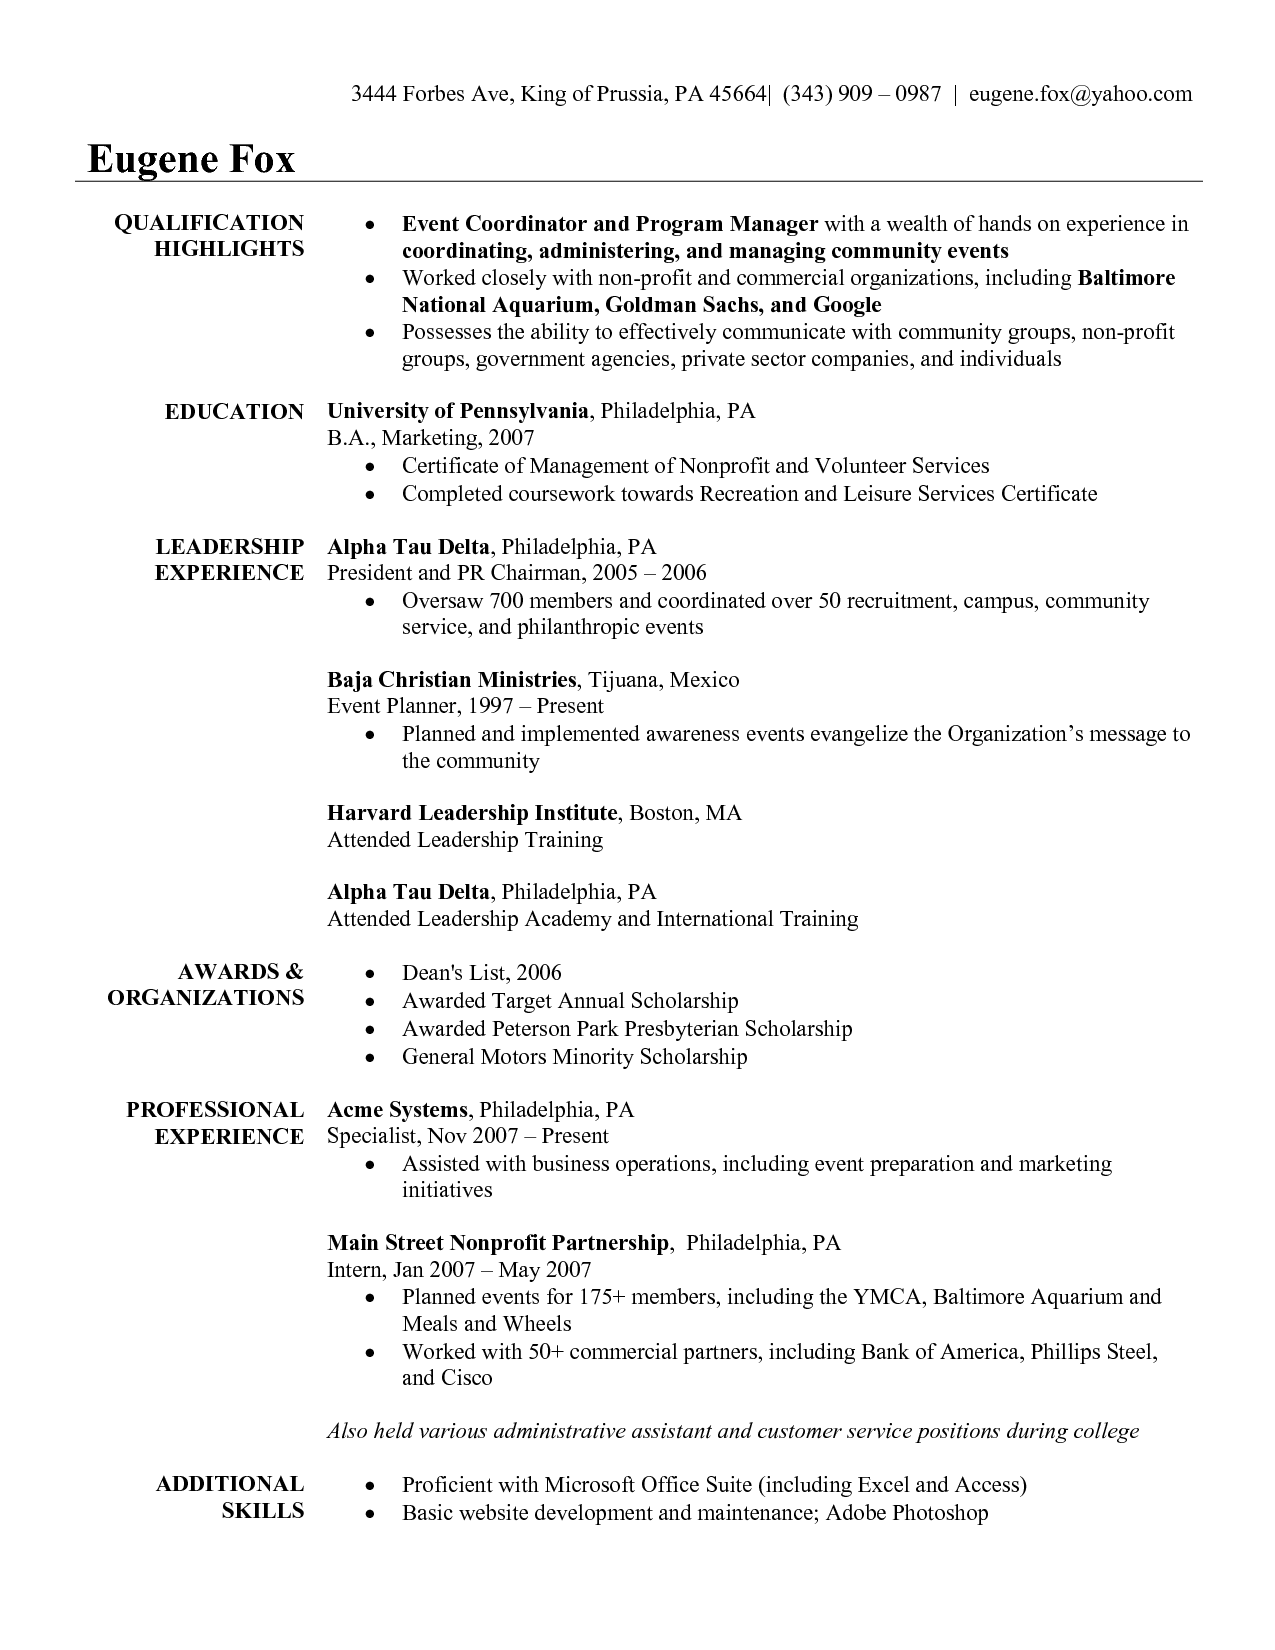 Special Events Coordinator Resume Portablegasgrillweber Before